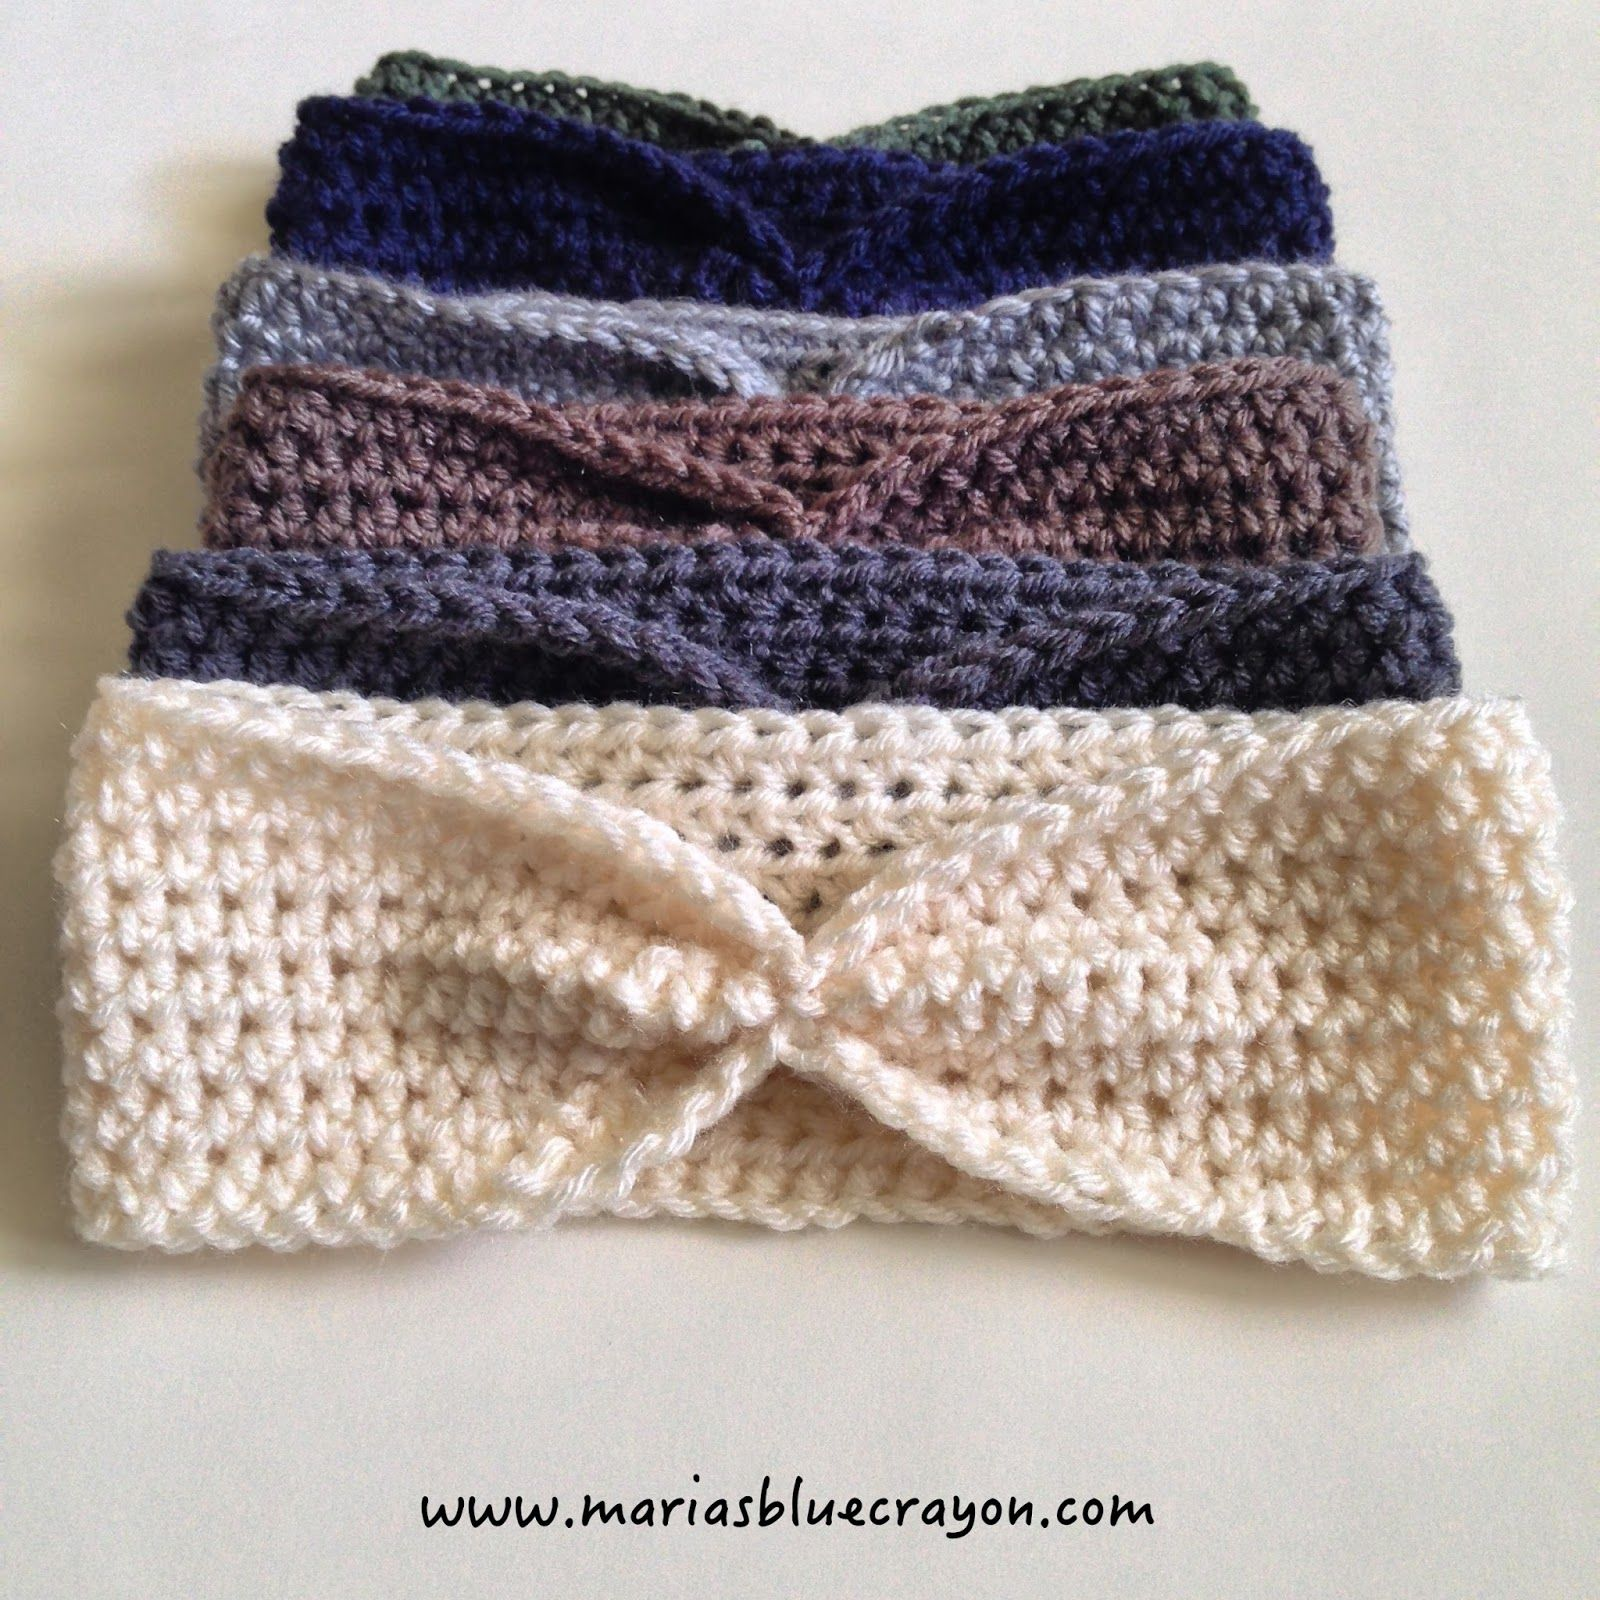 Find free crochet patterns, tutorials, inspiration, and more on this ...